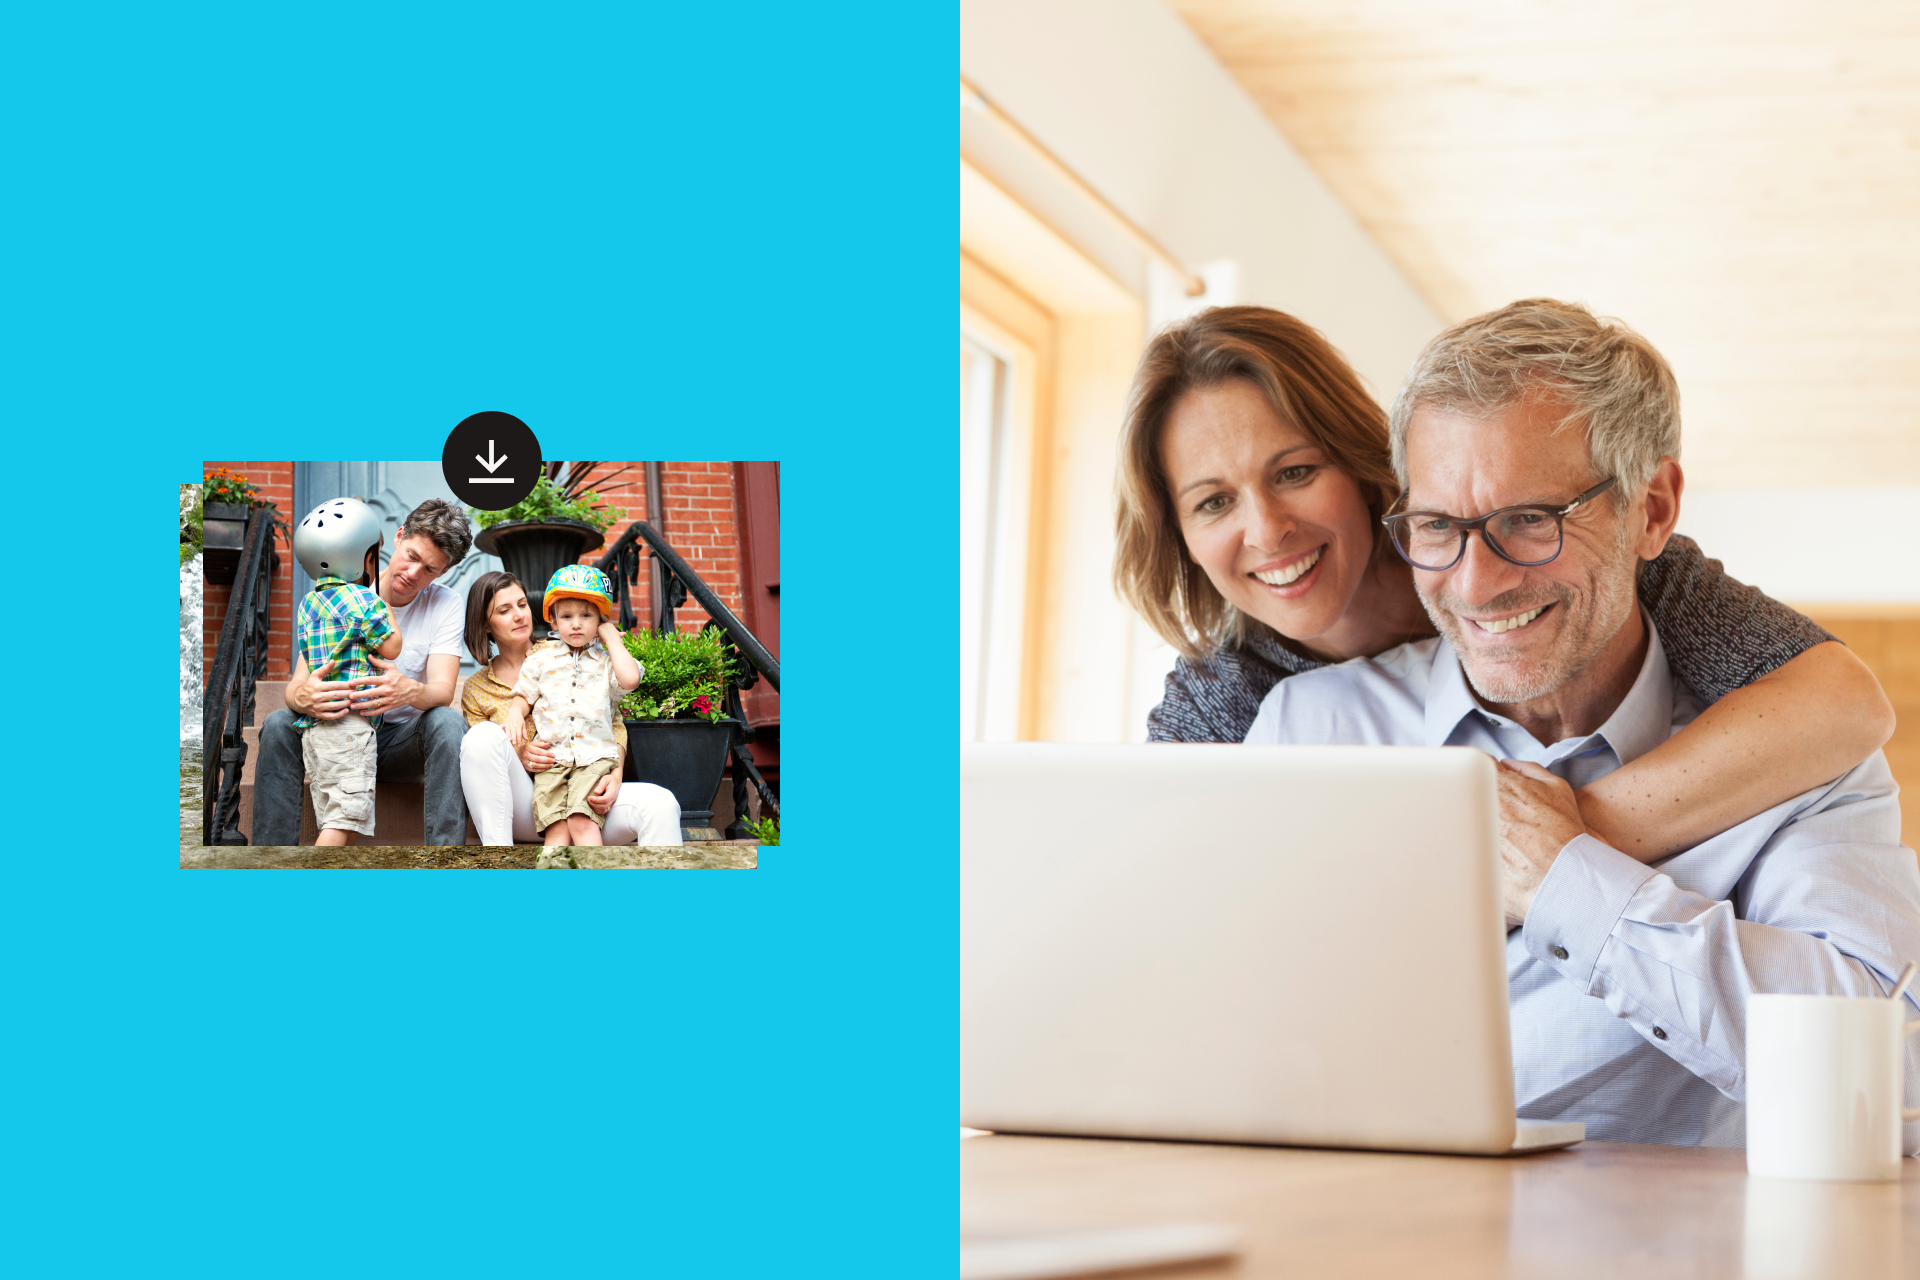 Smiling couple looks at a laptop displaying a photo of a couple with two kids